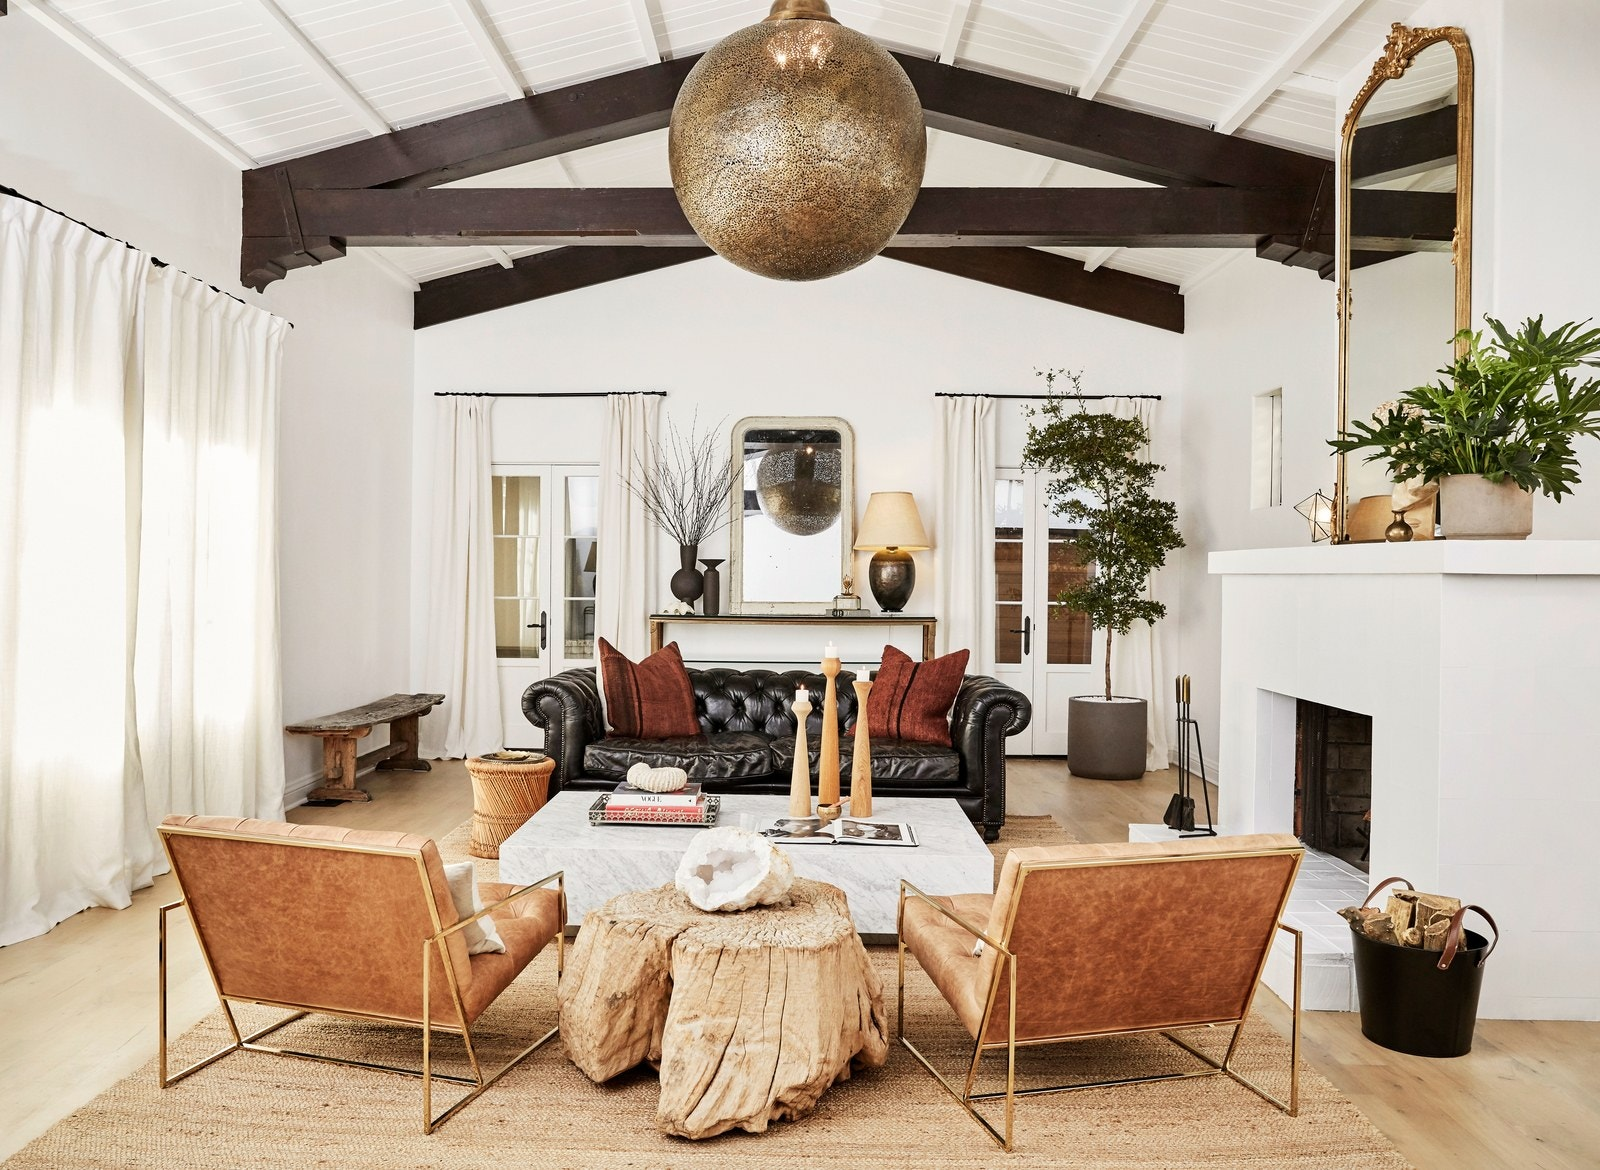 los angeles homes Los Angeles Homes: Meet Shay Mitchell's Redecorated Oasis 6